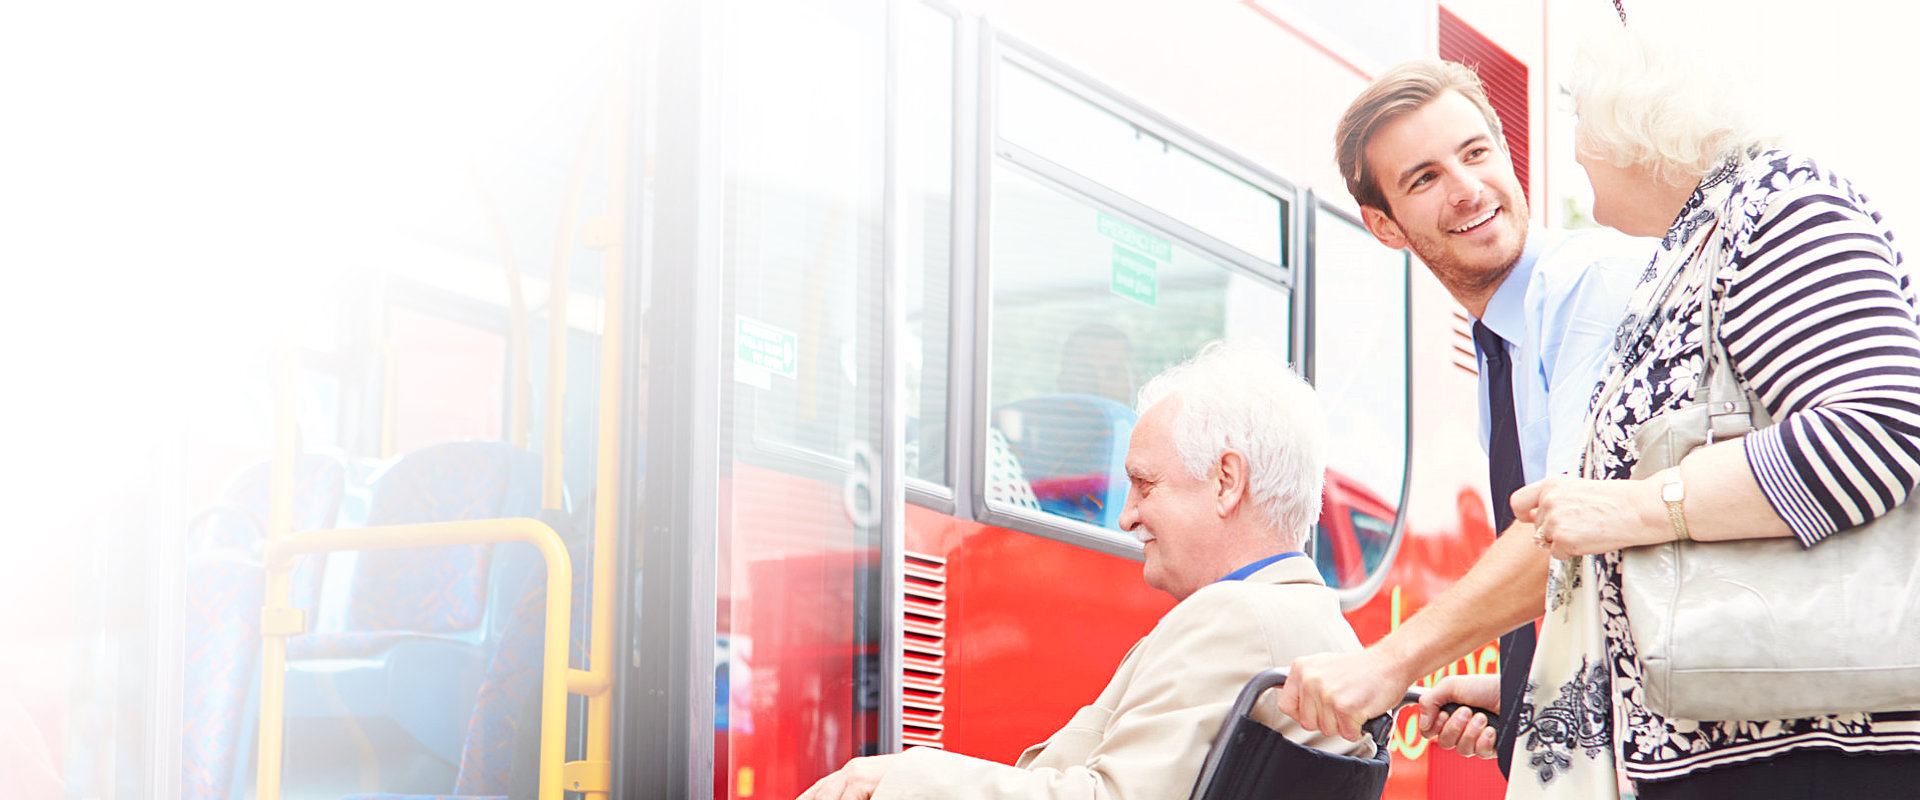 elderly couple getting inside the bus